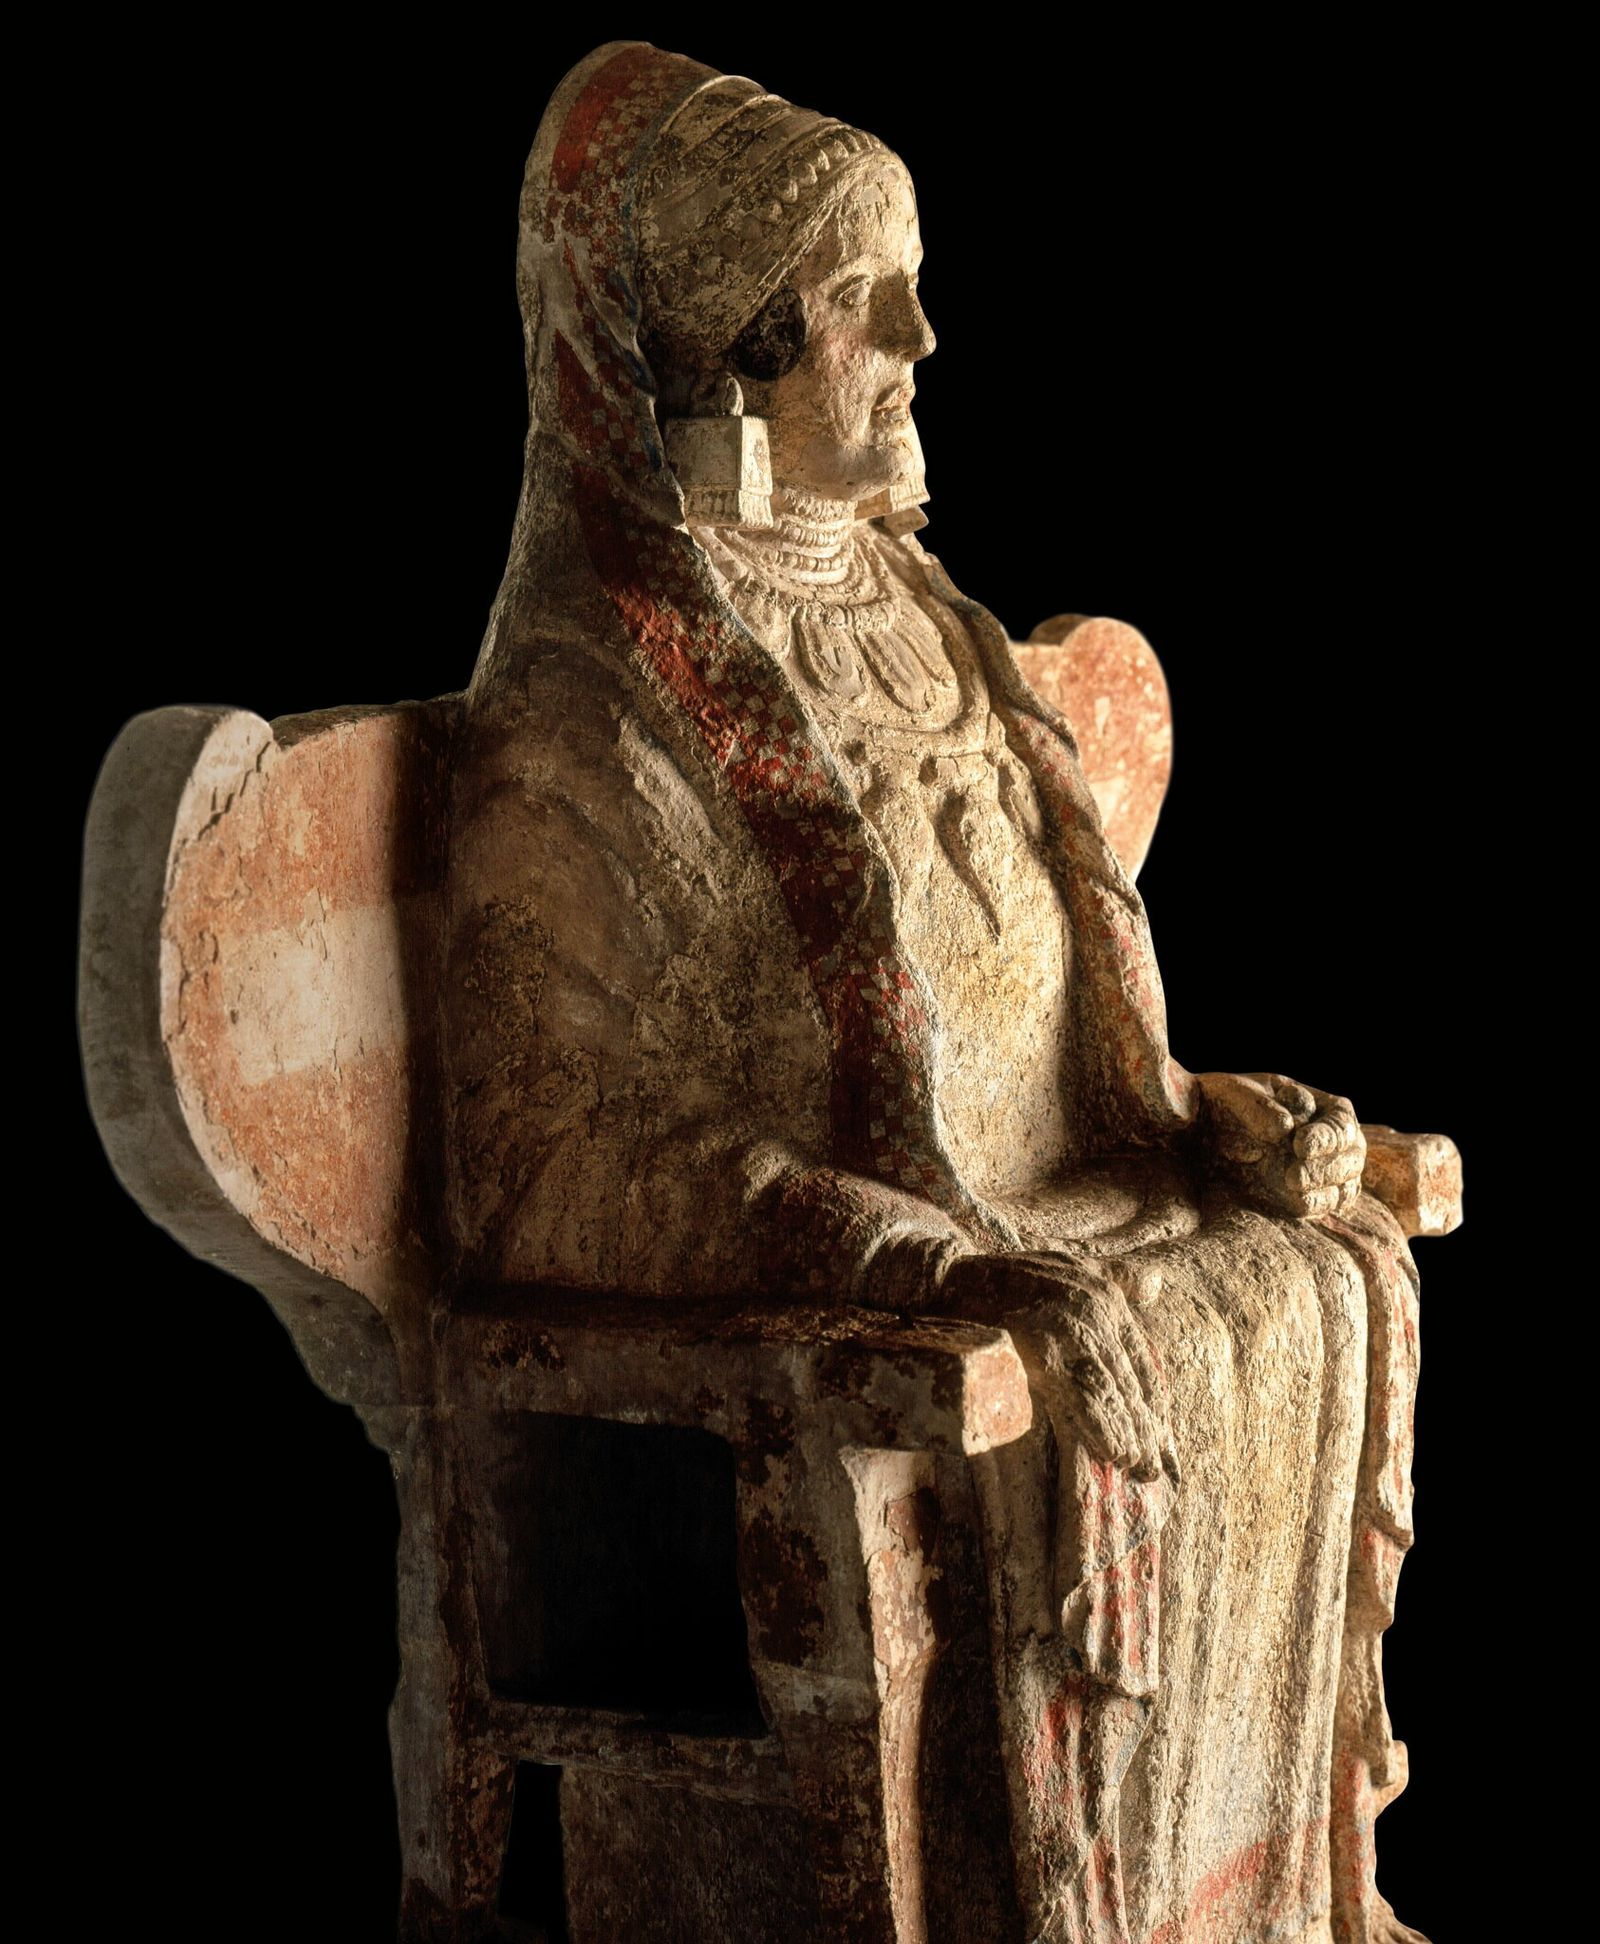 Seated on a winged throne, the colorful Lady of Baza was found in an Iberian necropolis ...